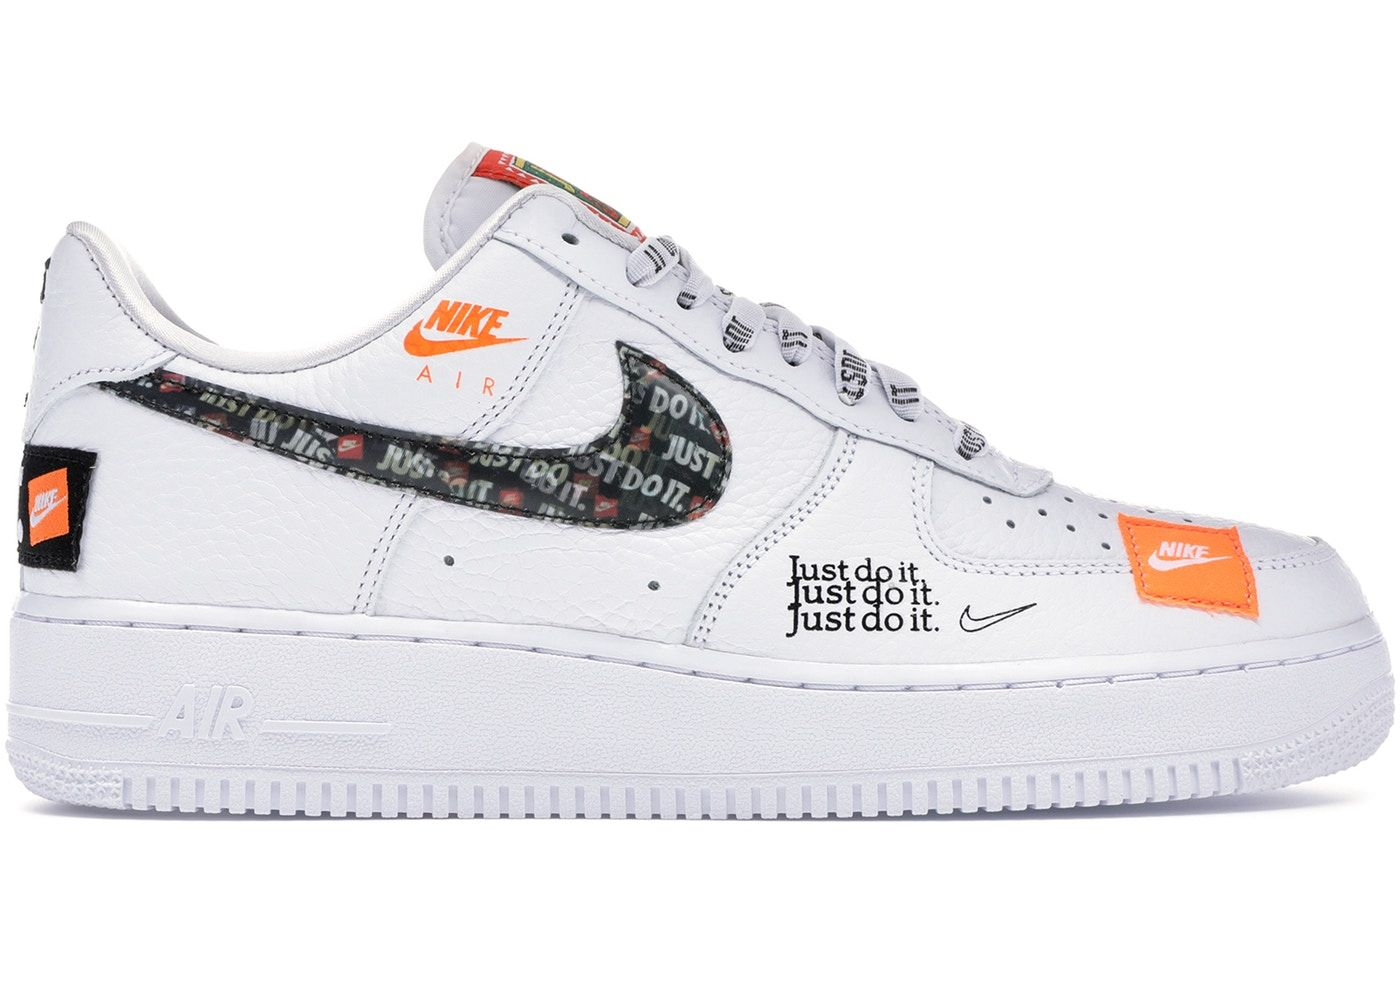 Nike Air Force 1 Low Just Do It Pack White Black Hype Shoes Beautiful Sneakers Black Nikes